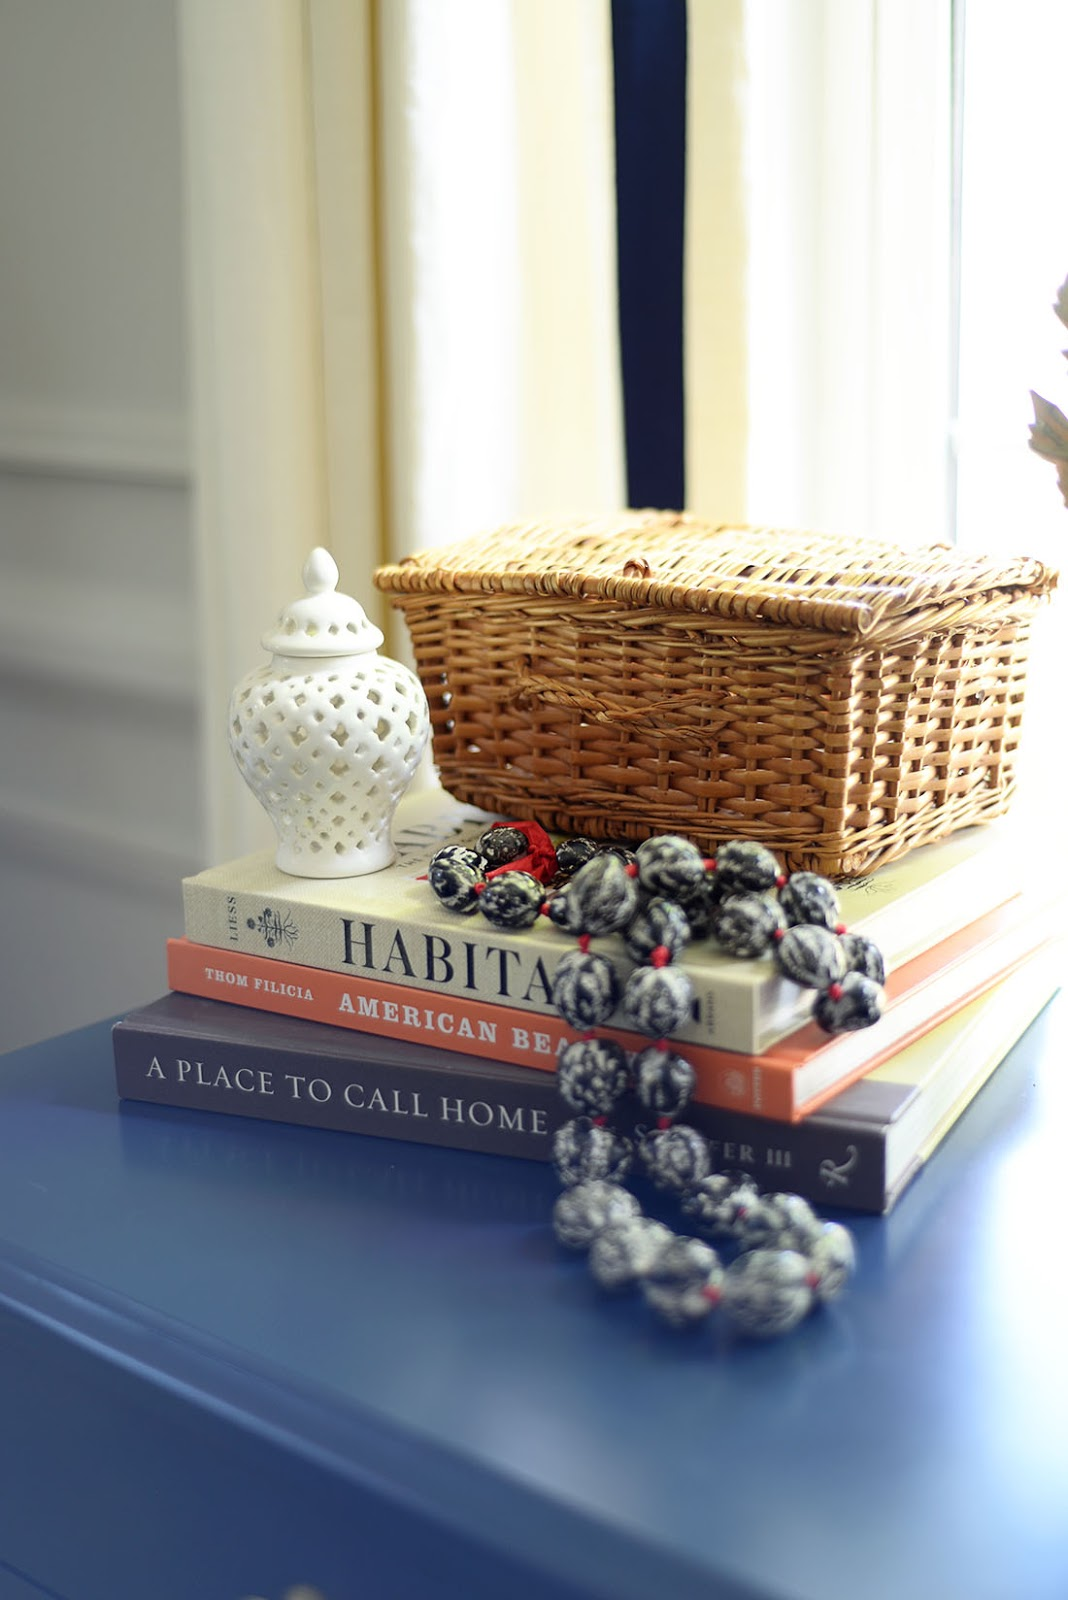 objects on books, habitat book lauren liess, mini ginger jar, woven box, fall decorating ideas, fall living room